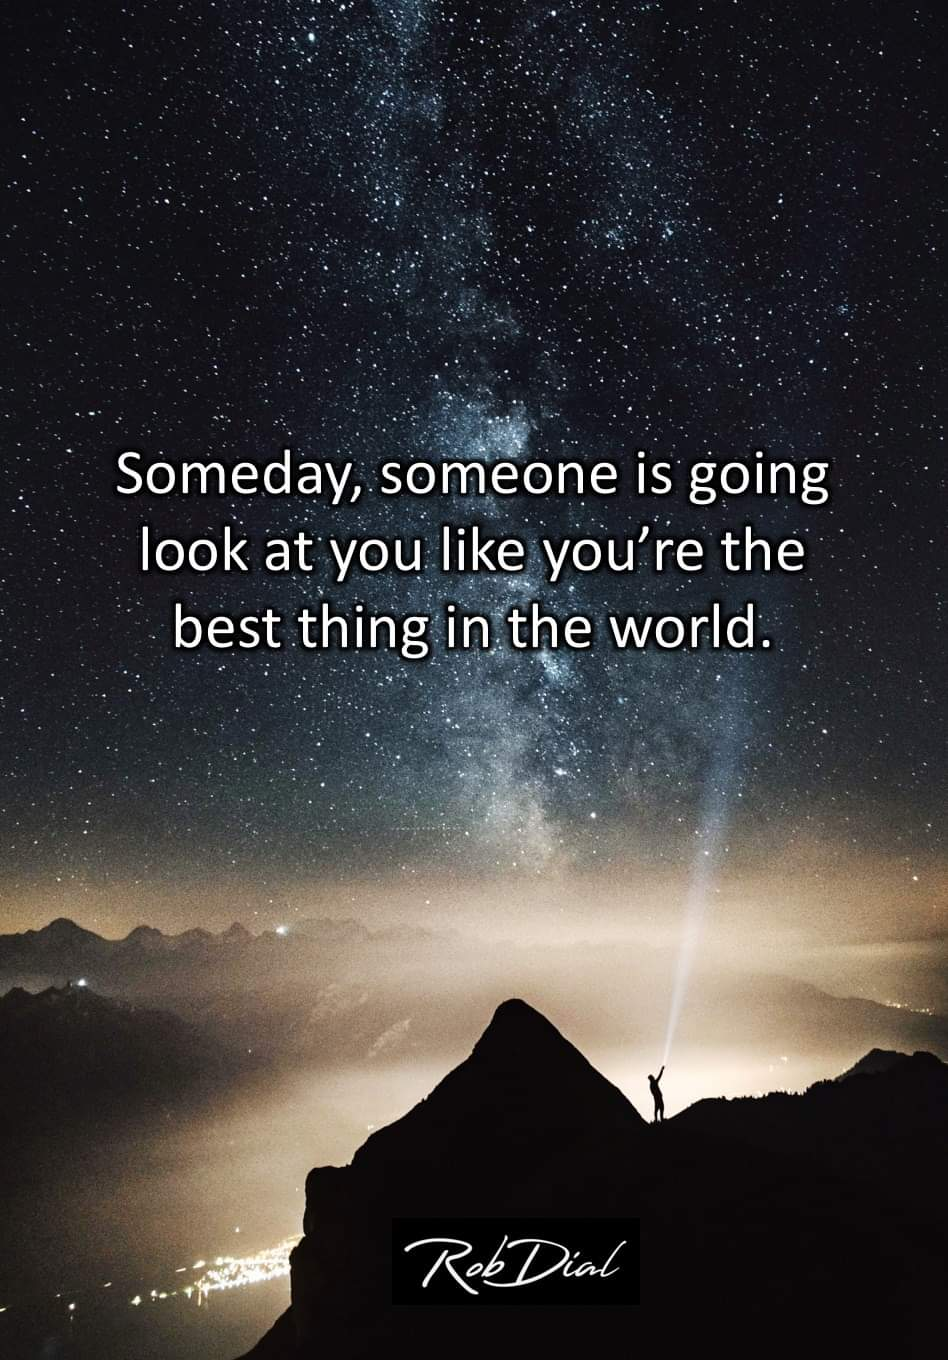 [Image] It could happen